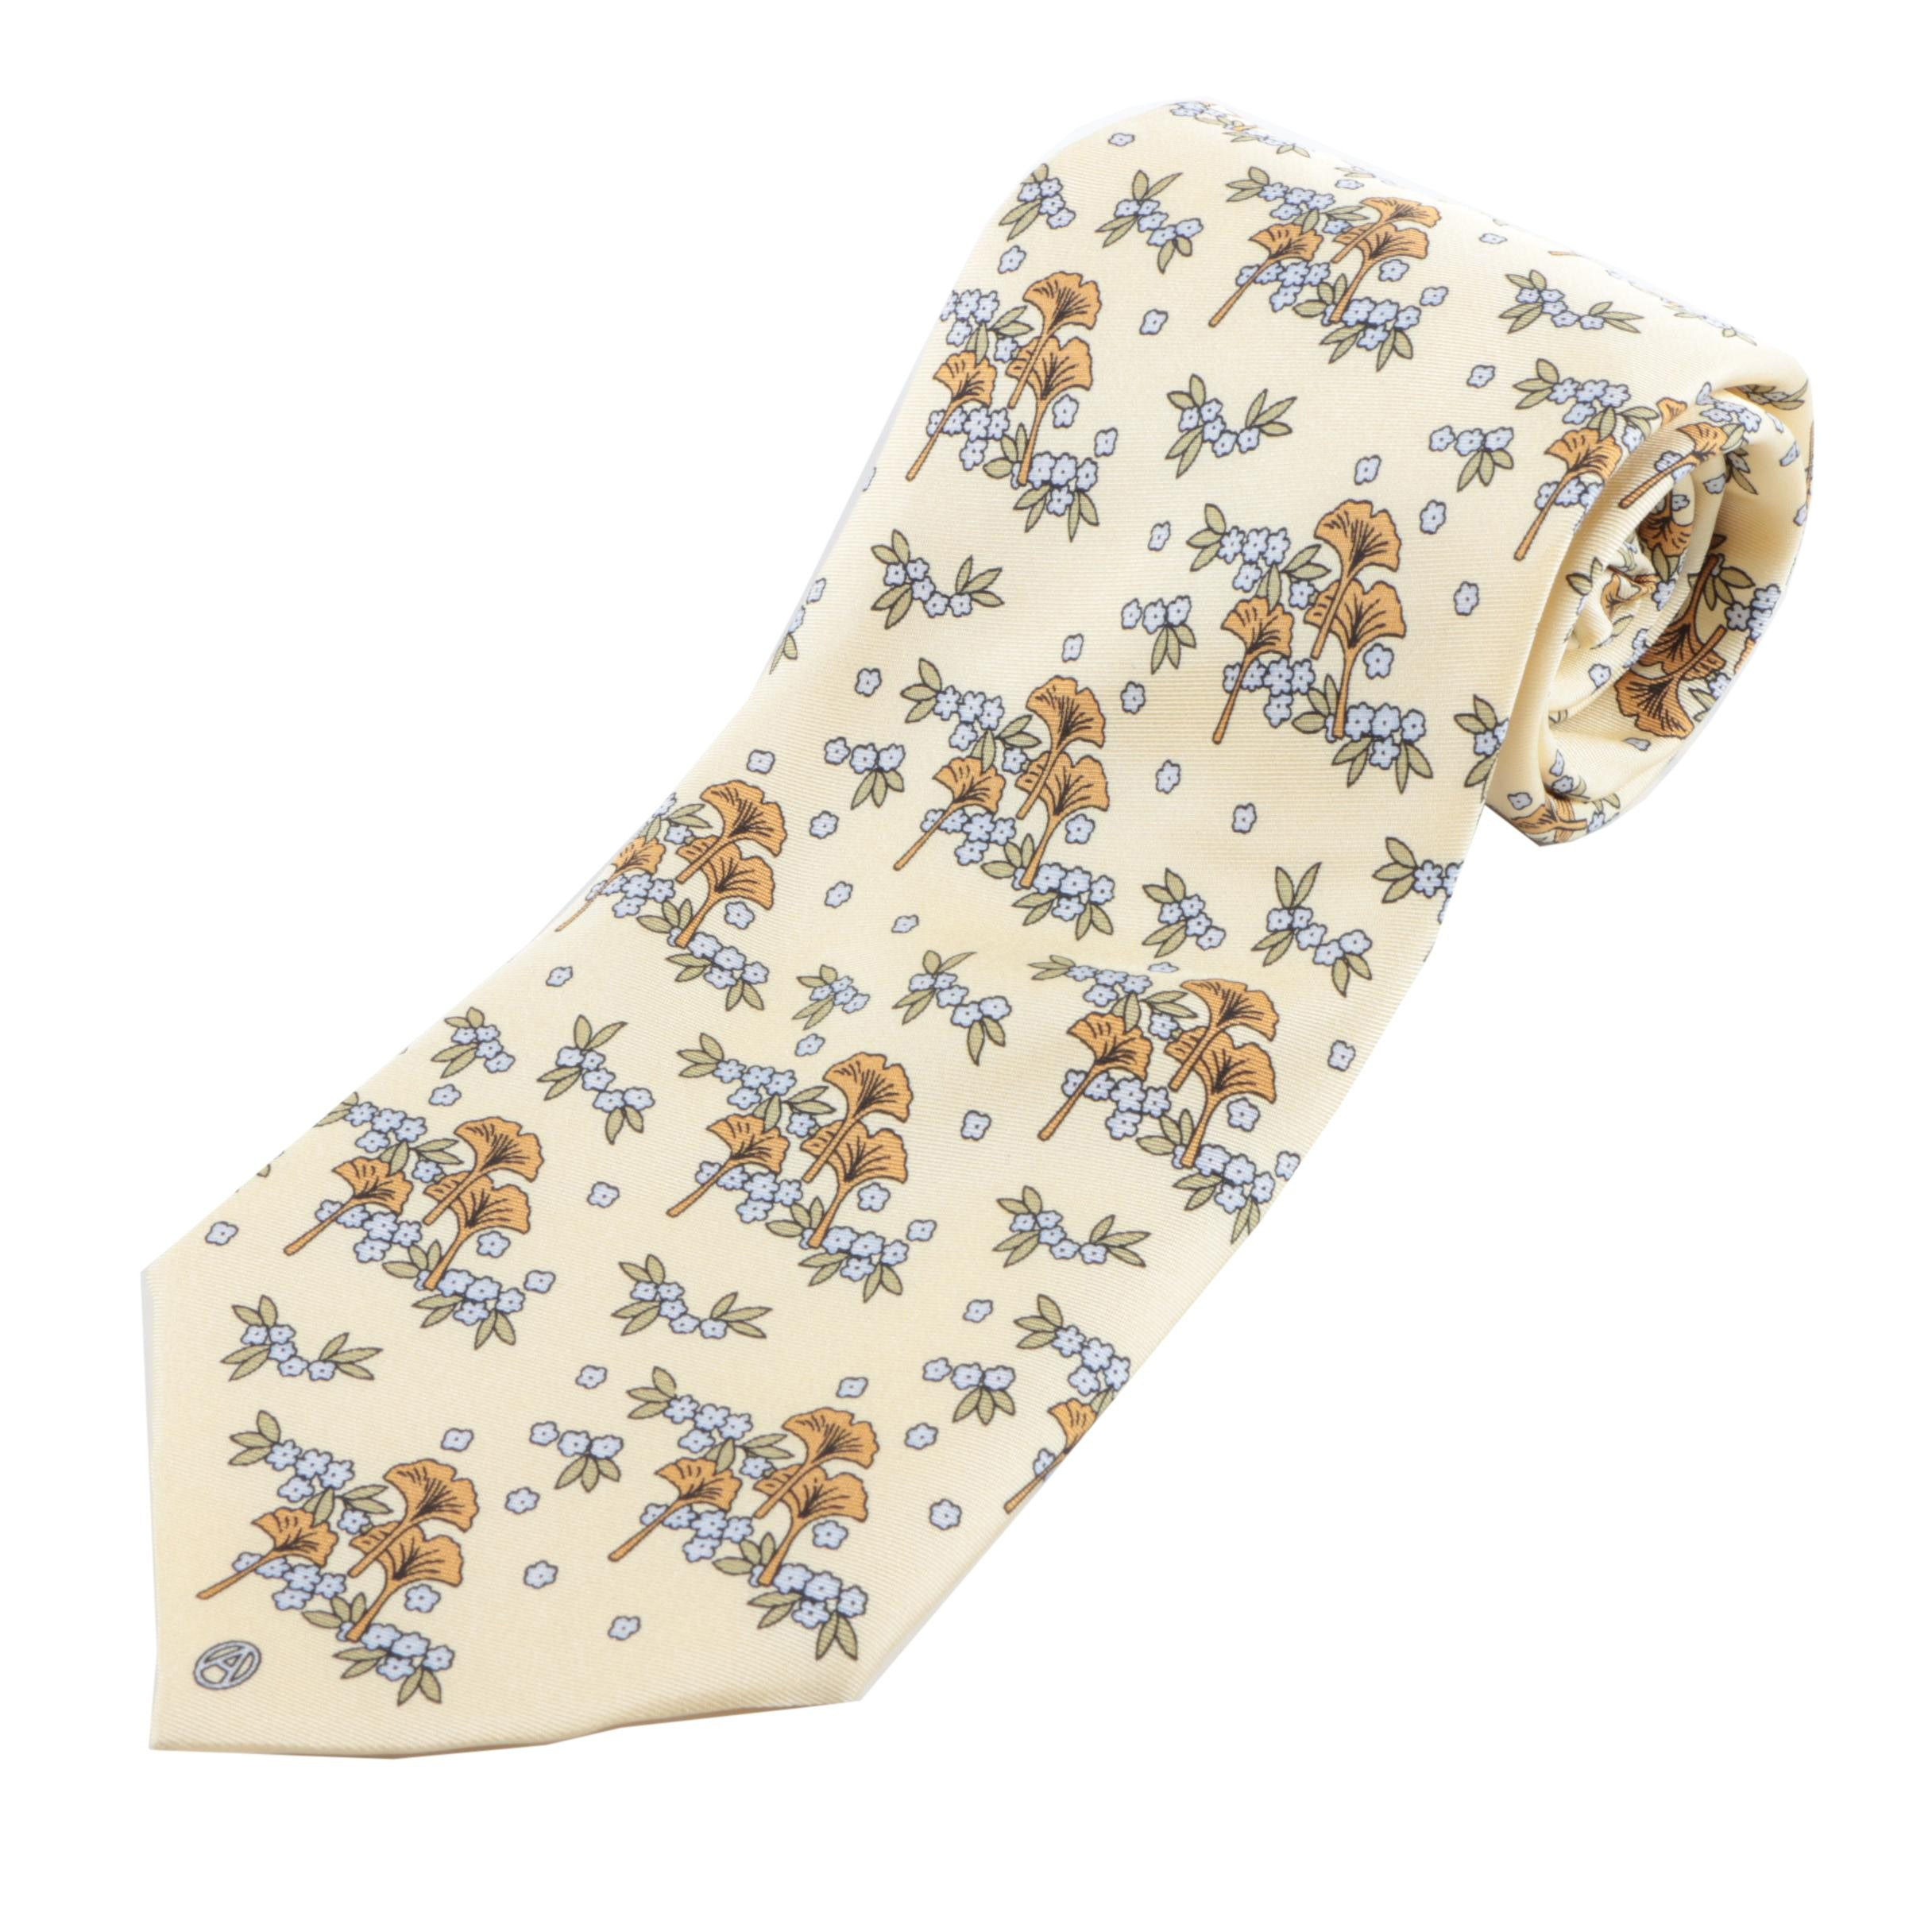 Men's Arnys Paris Handmade C/1424 Silk Necktie in Floral Print